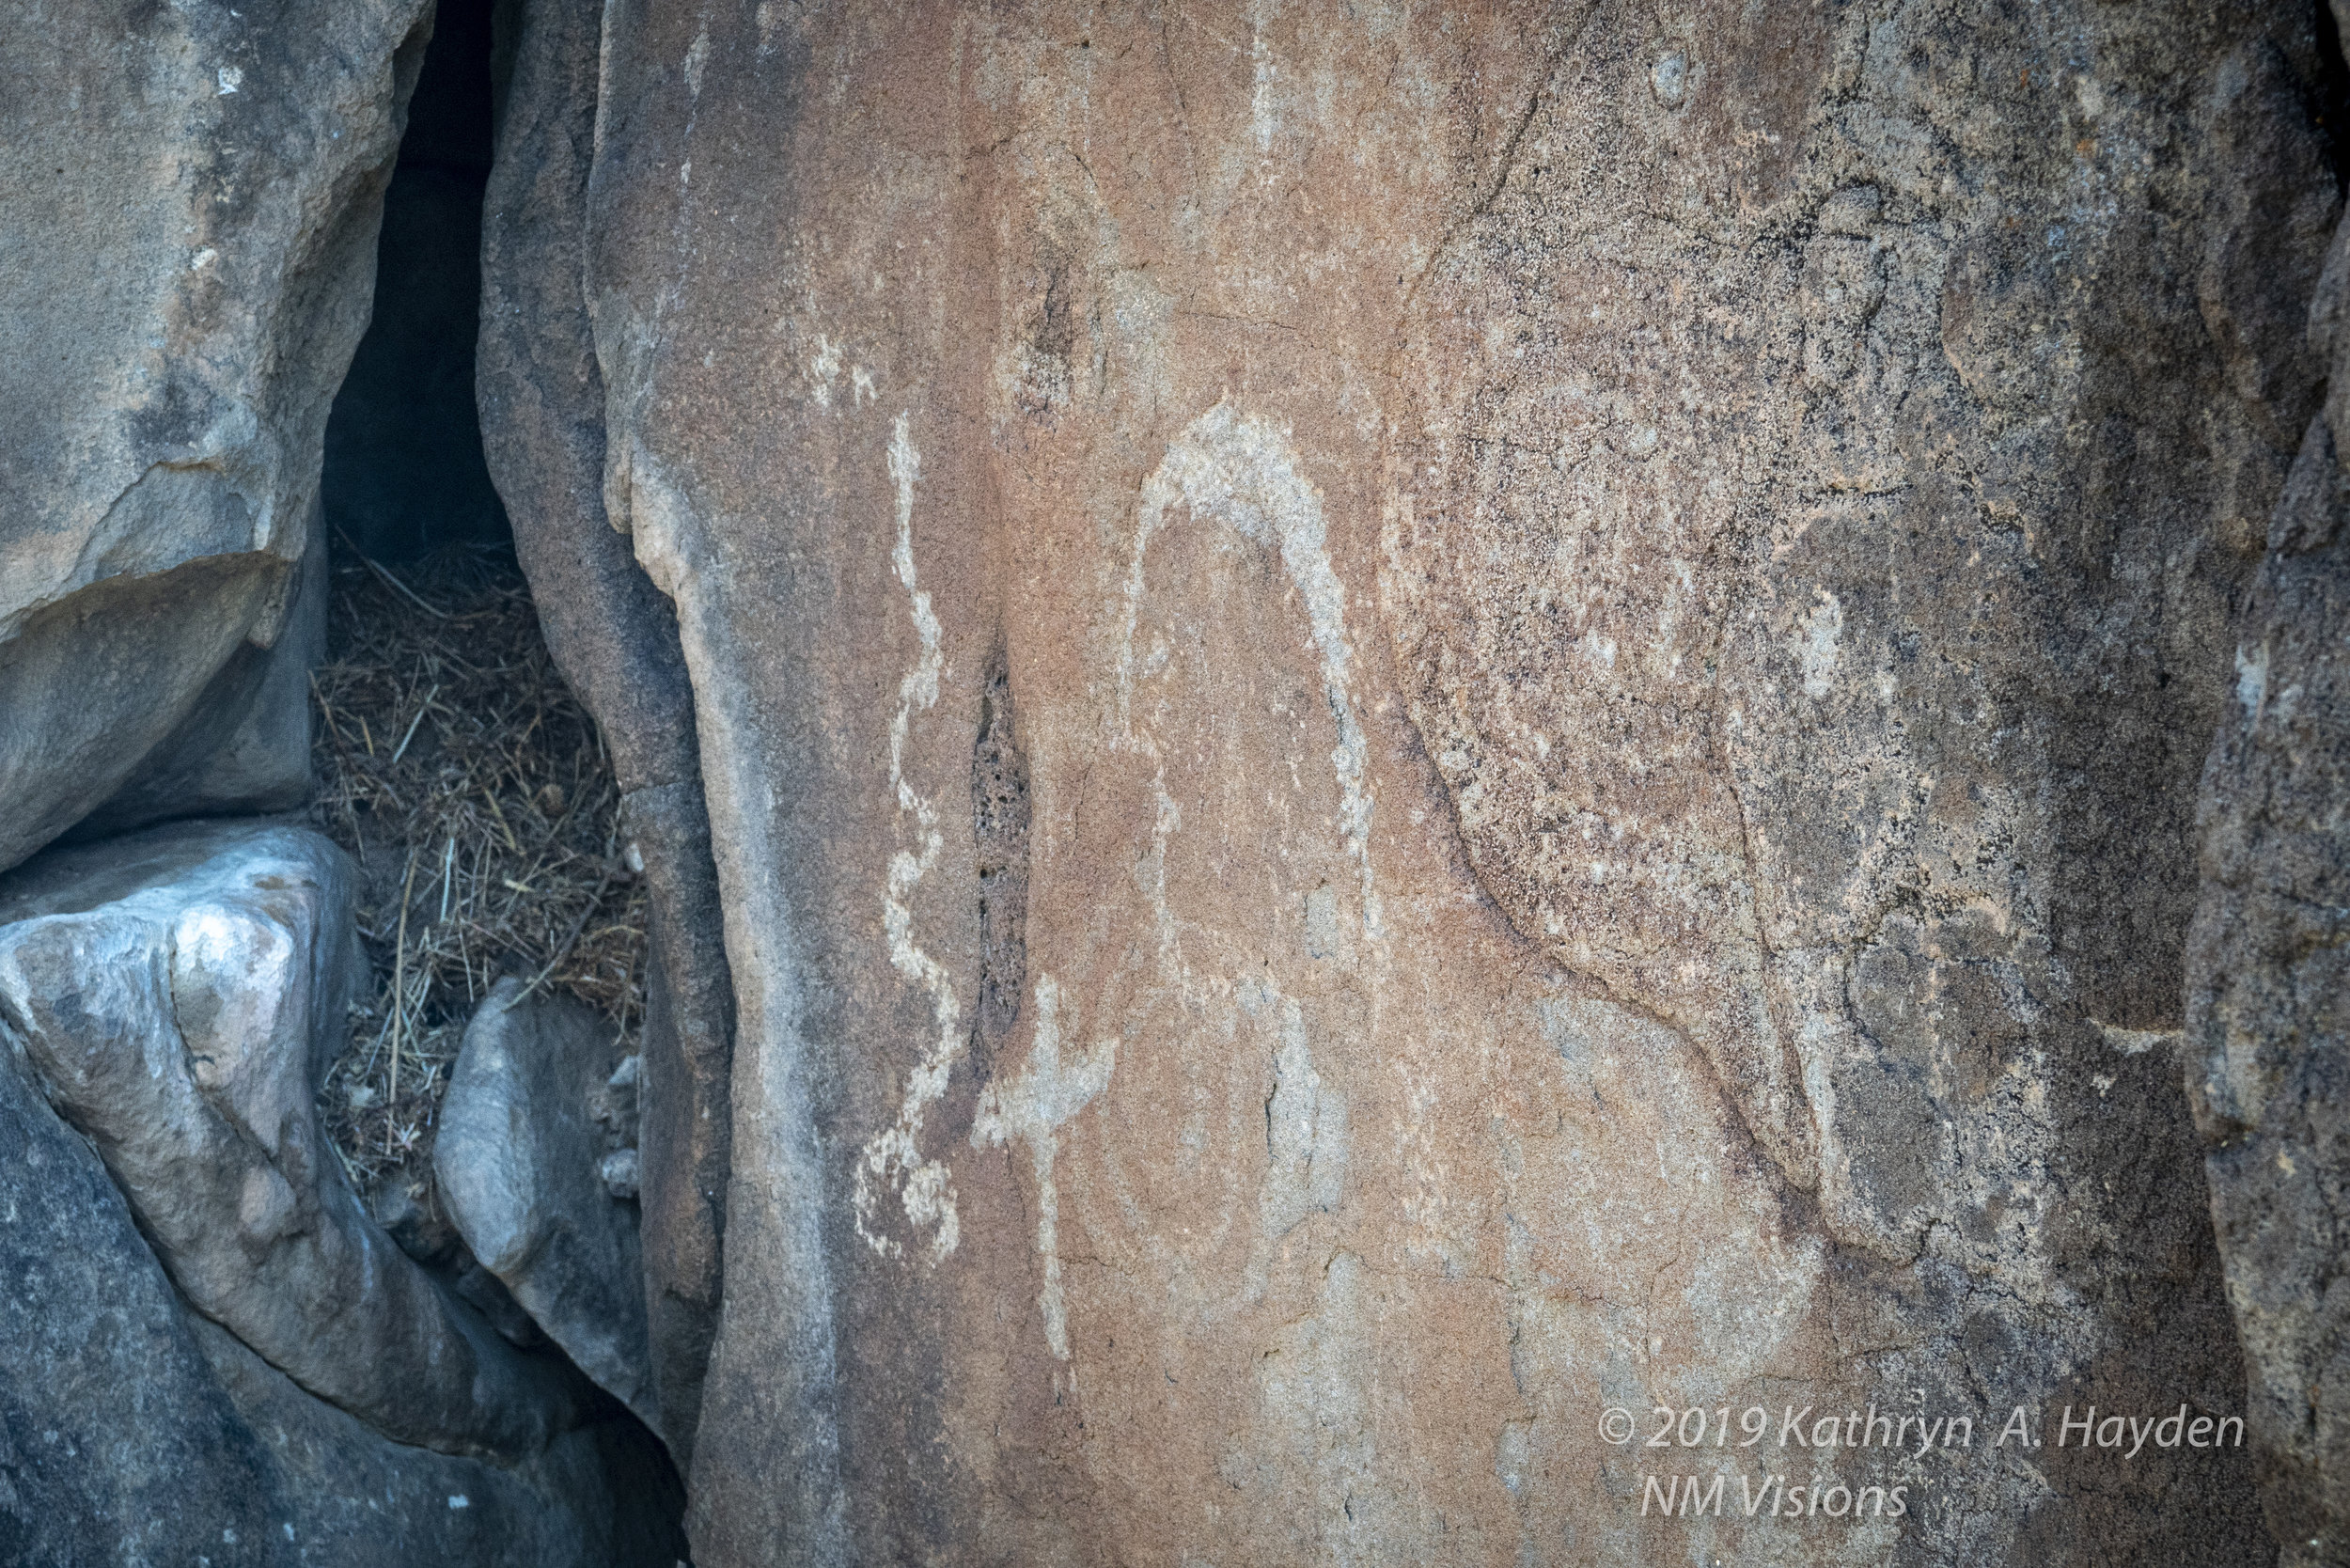 The shepherds would put crosses on some of the rocks with petroglyphs as counter to what they considered pagan art.  And can see the more modern residents have made the crevices their home